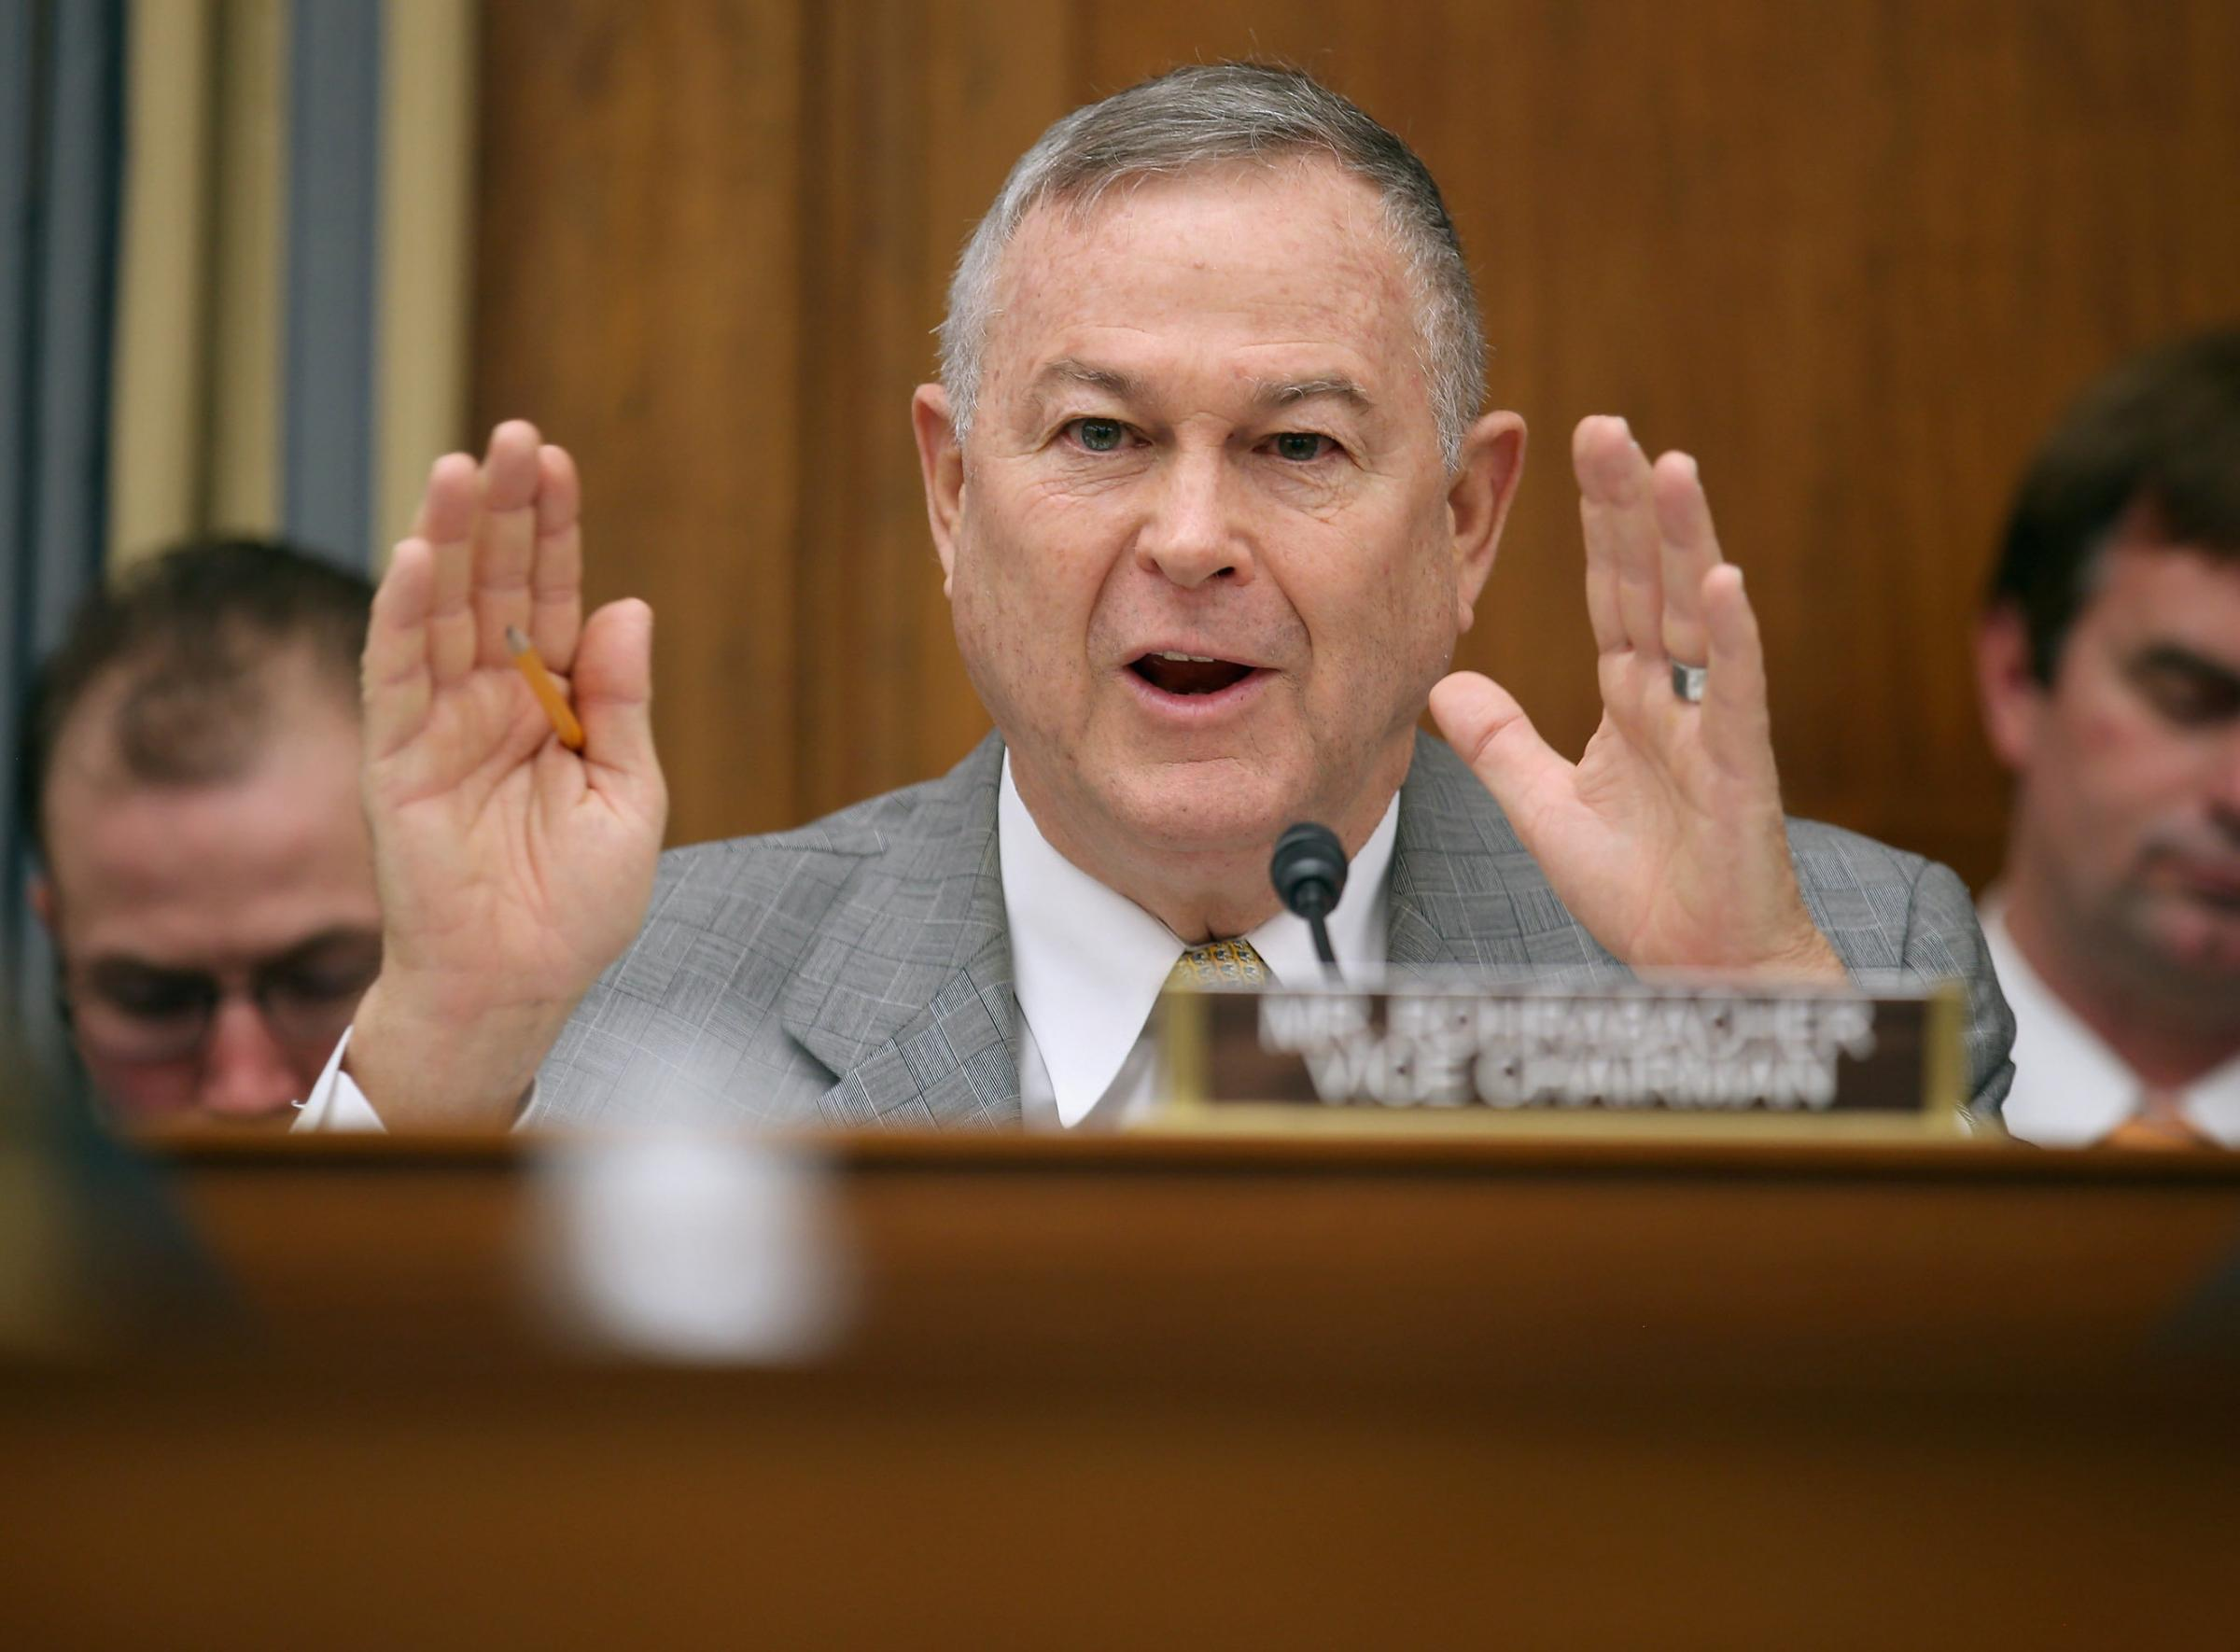 Dana Rohrabacher said regime change in Iran has to come from within and not from without